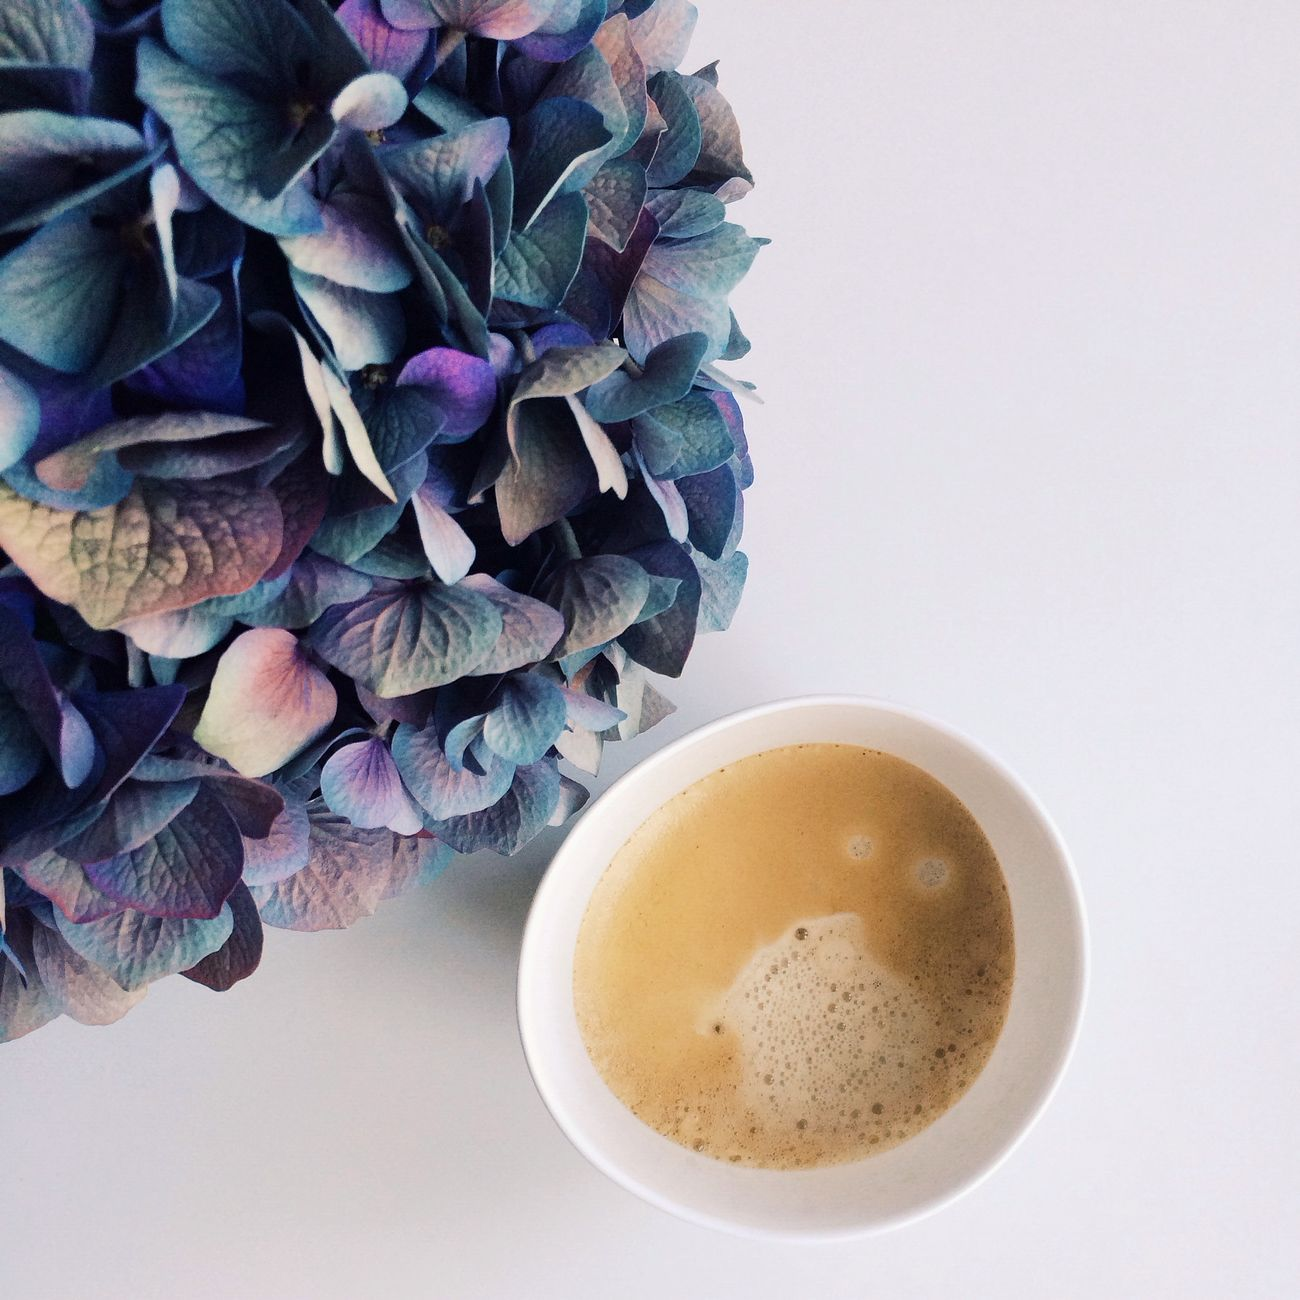 Coffee Coffee Break Another One Nespresso Nespresso Time Nespressomoments Check This Out Hello World Flowers Vscocam VSCO